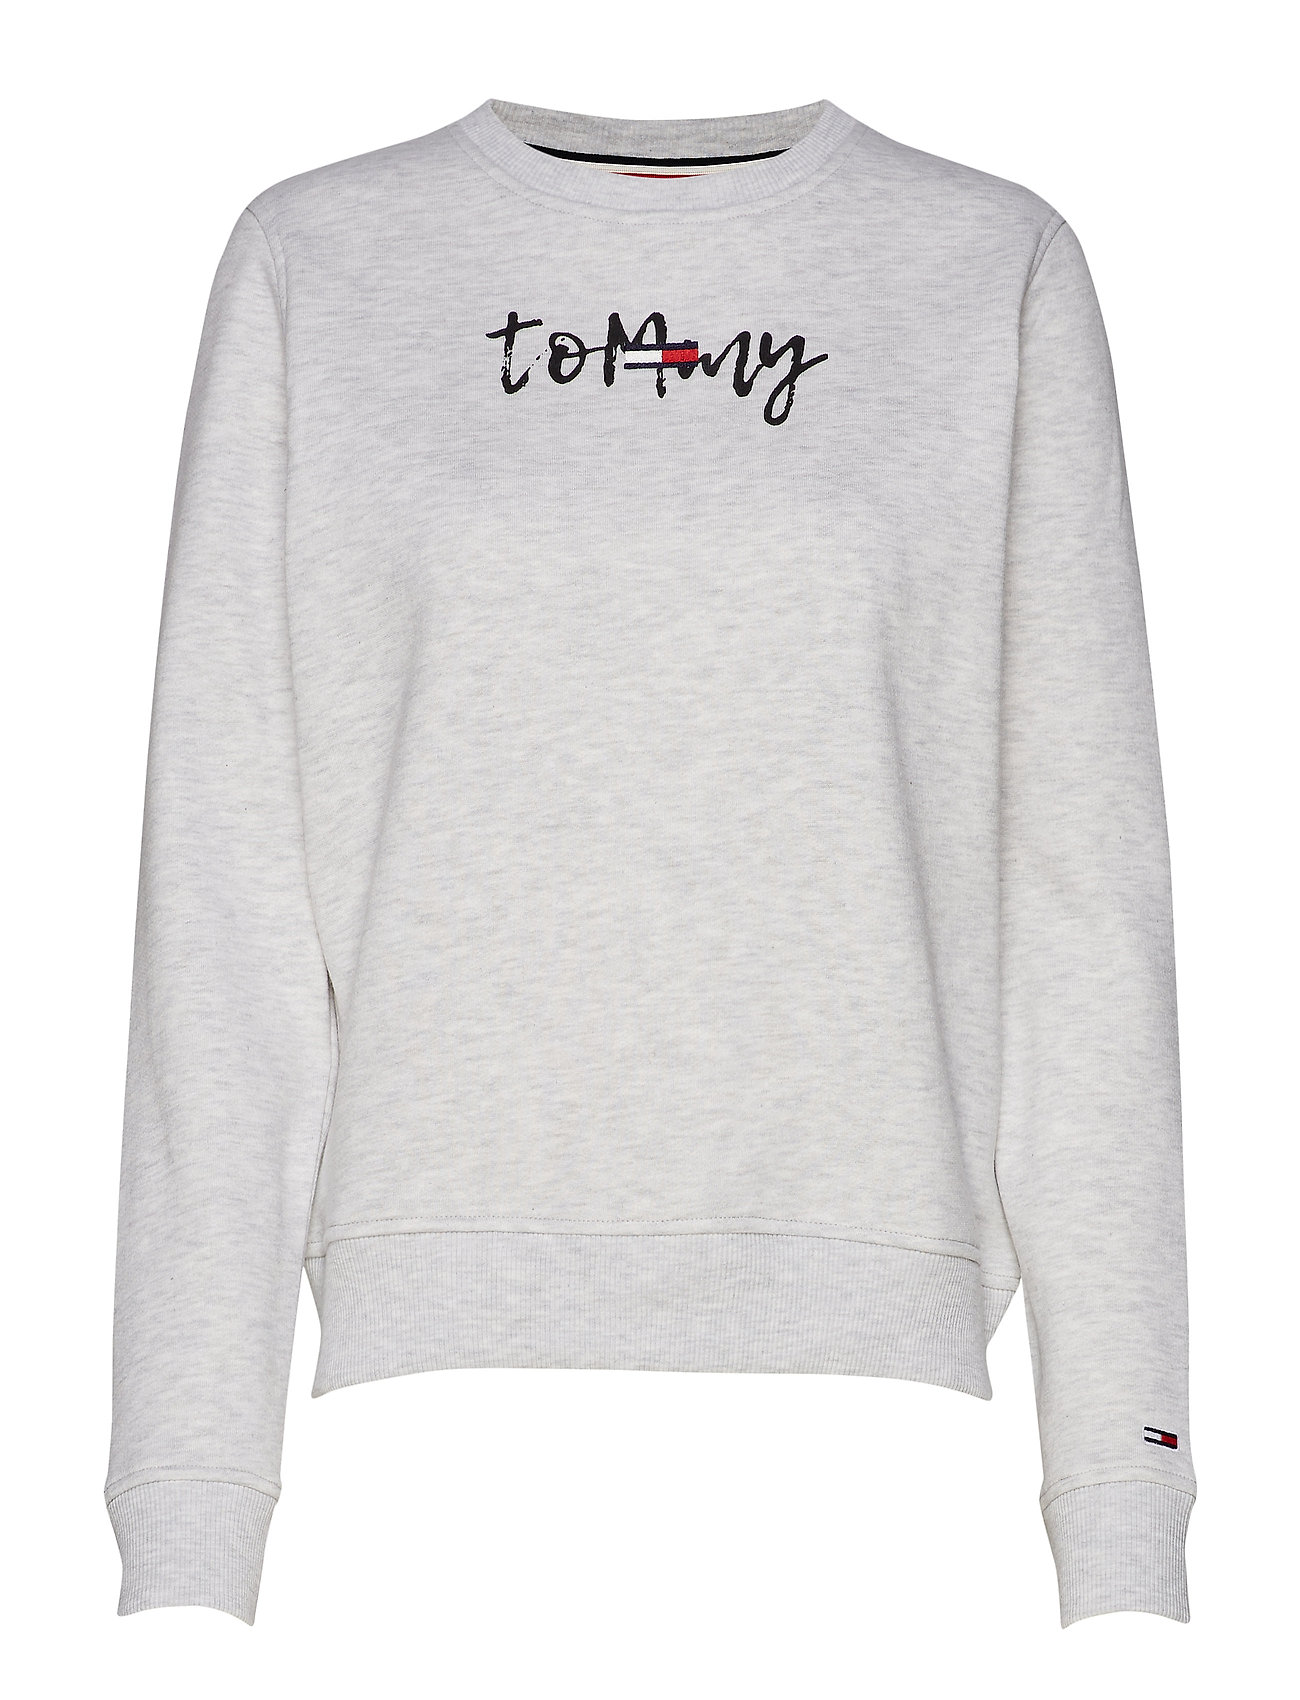 Essential Tjw Jeans HtrTommy Logo Grey Spale oWdCxBer